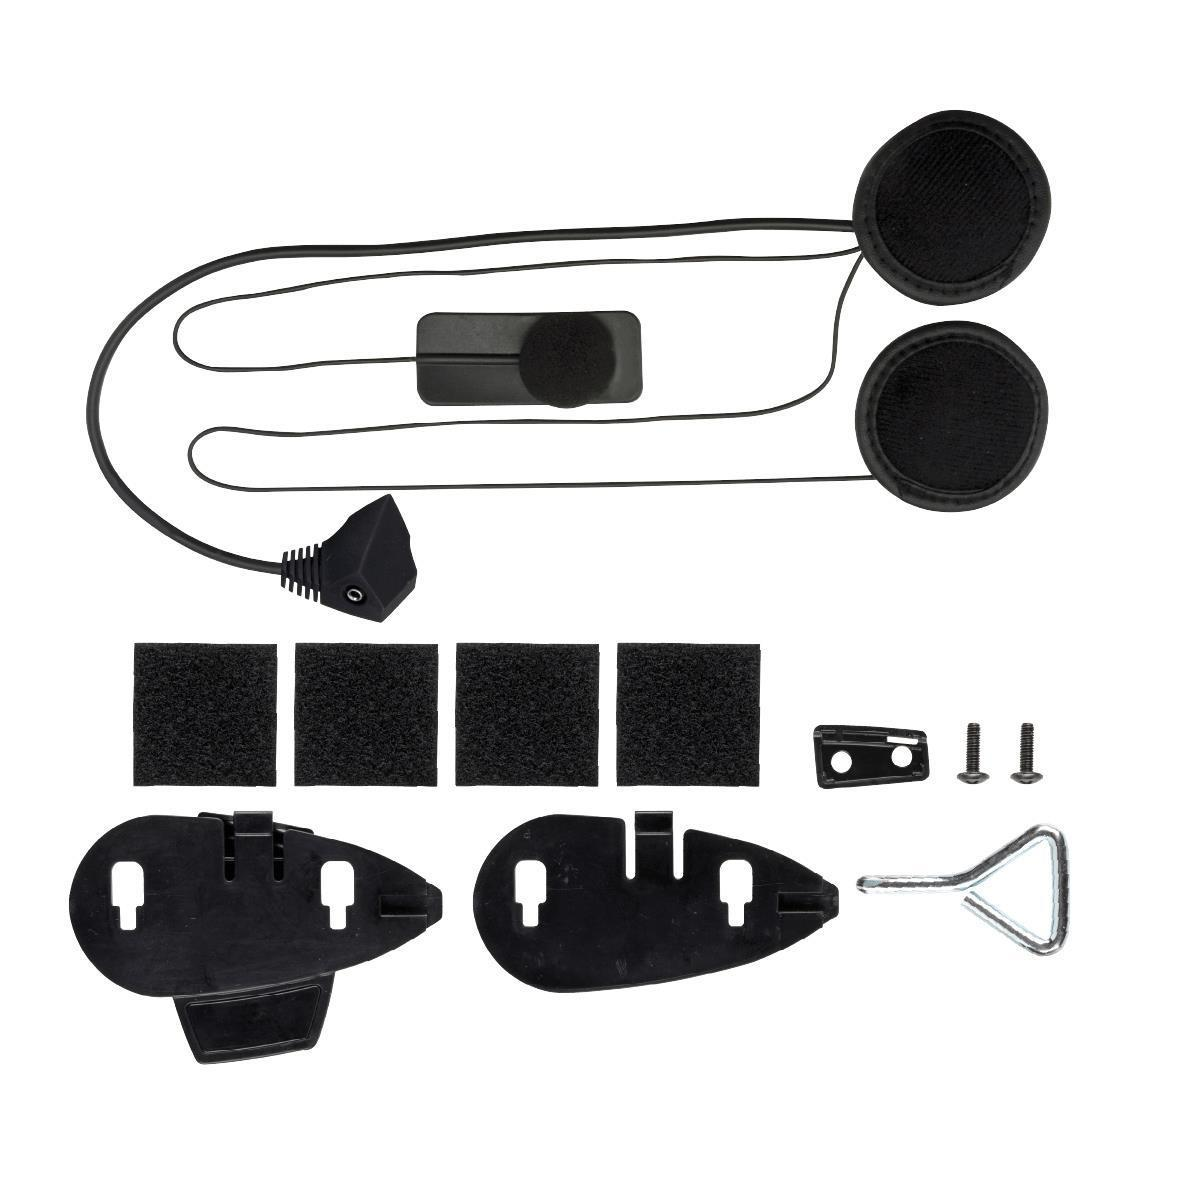 Kit casco integrale microfono mentoniera Cellular Line F5 Slim